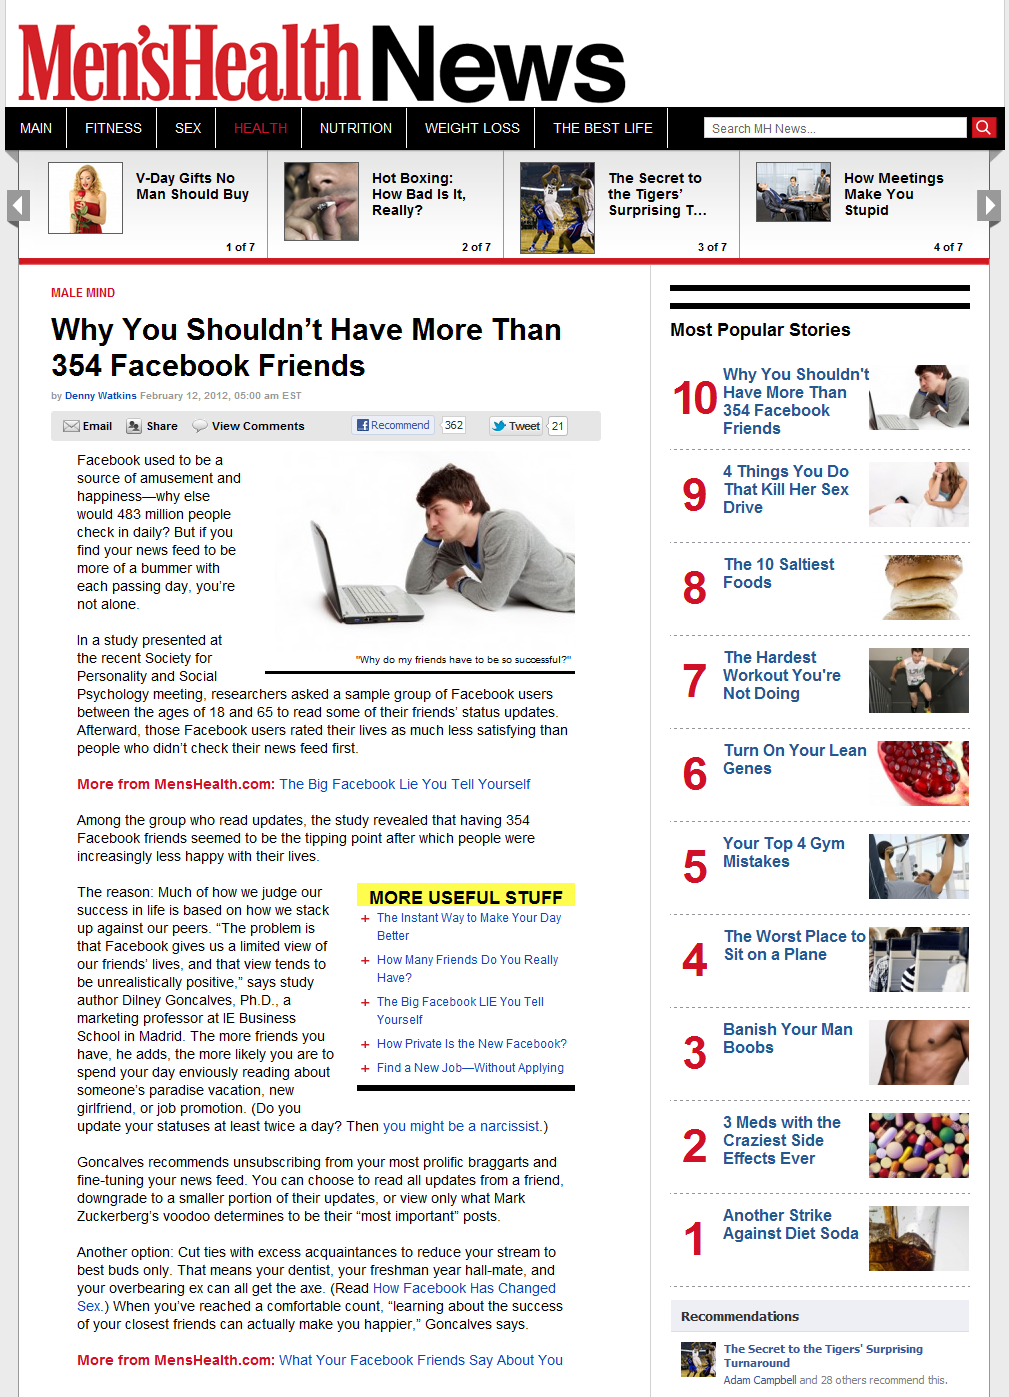 Facebook Lowers Your Self-Esteem - Men's Health News